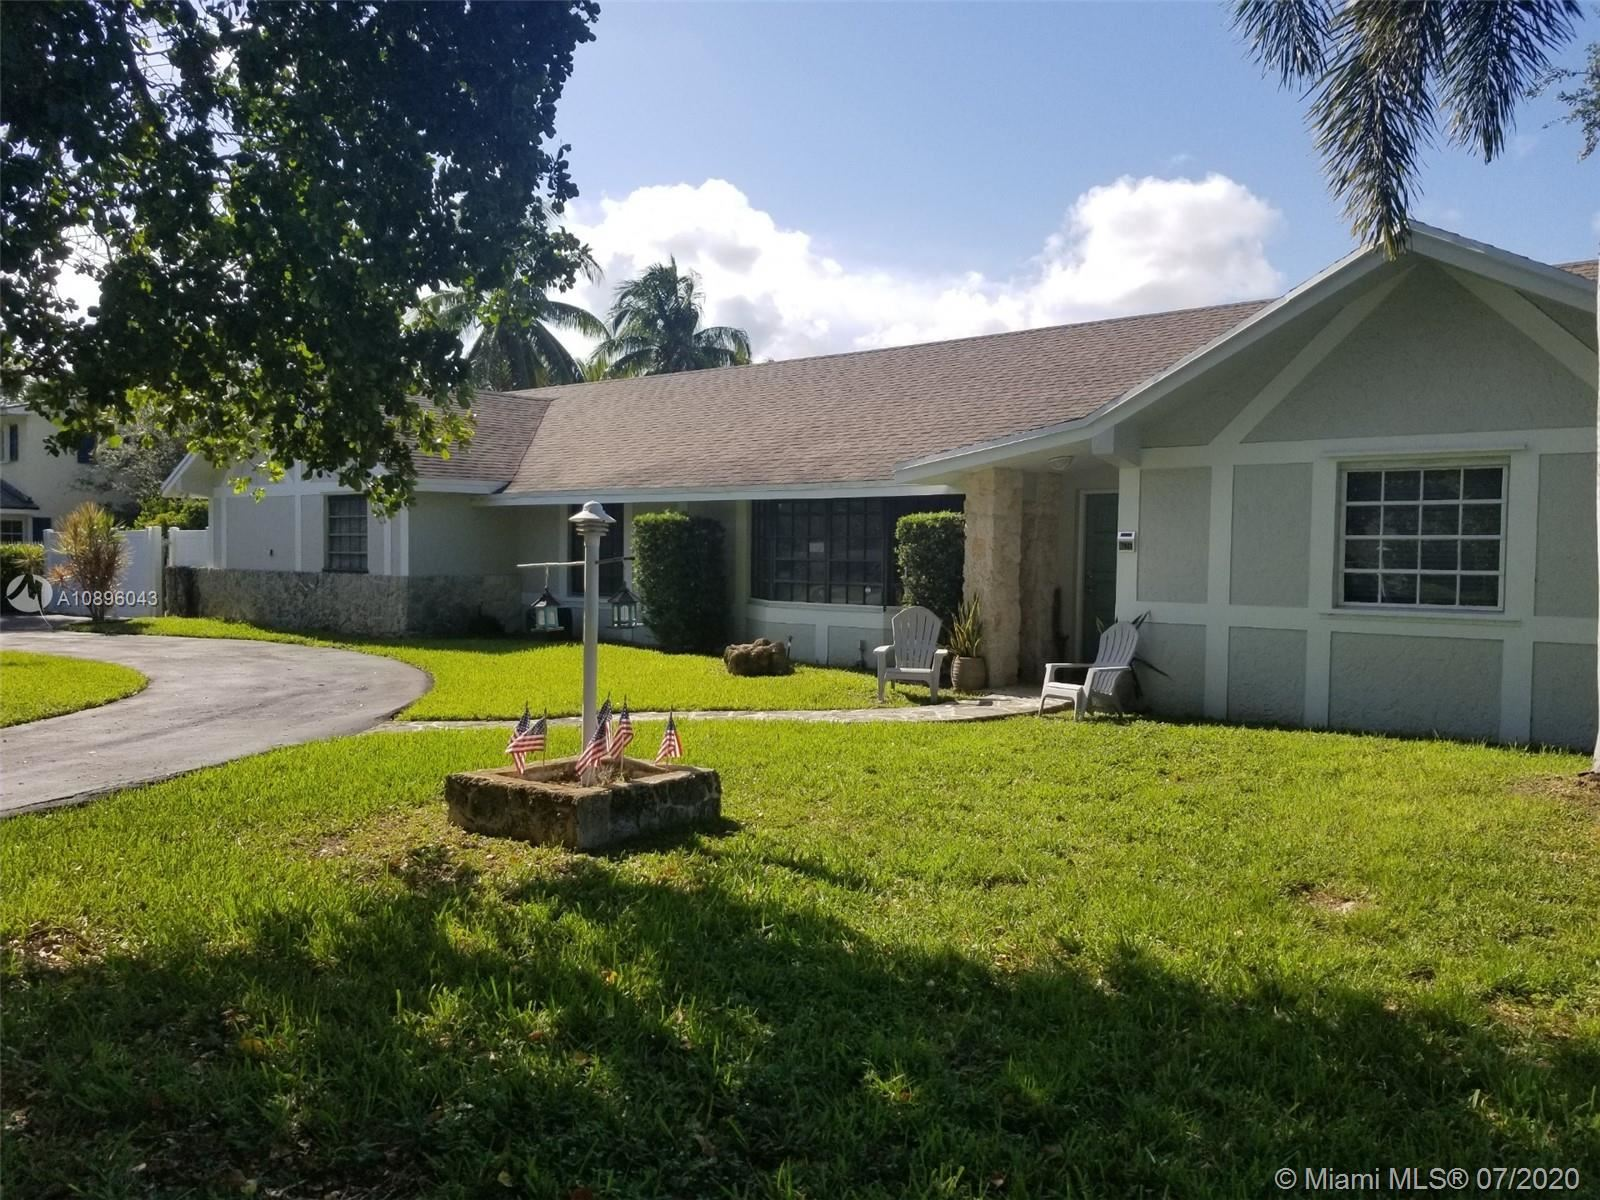 7521 SW 176th St, Palmetto Bay, FL 33157 - #: A10896043